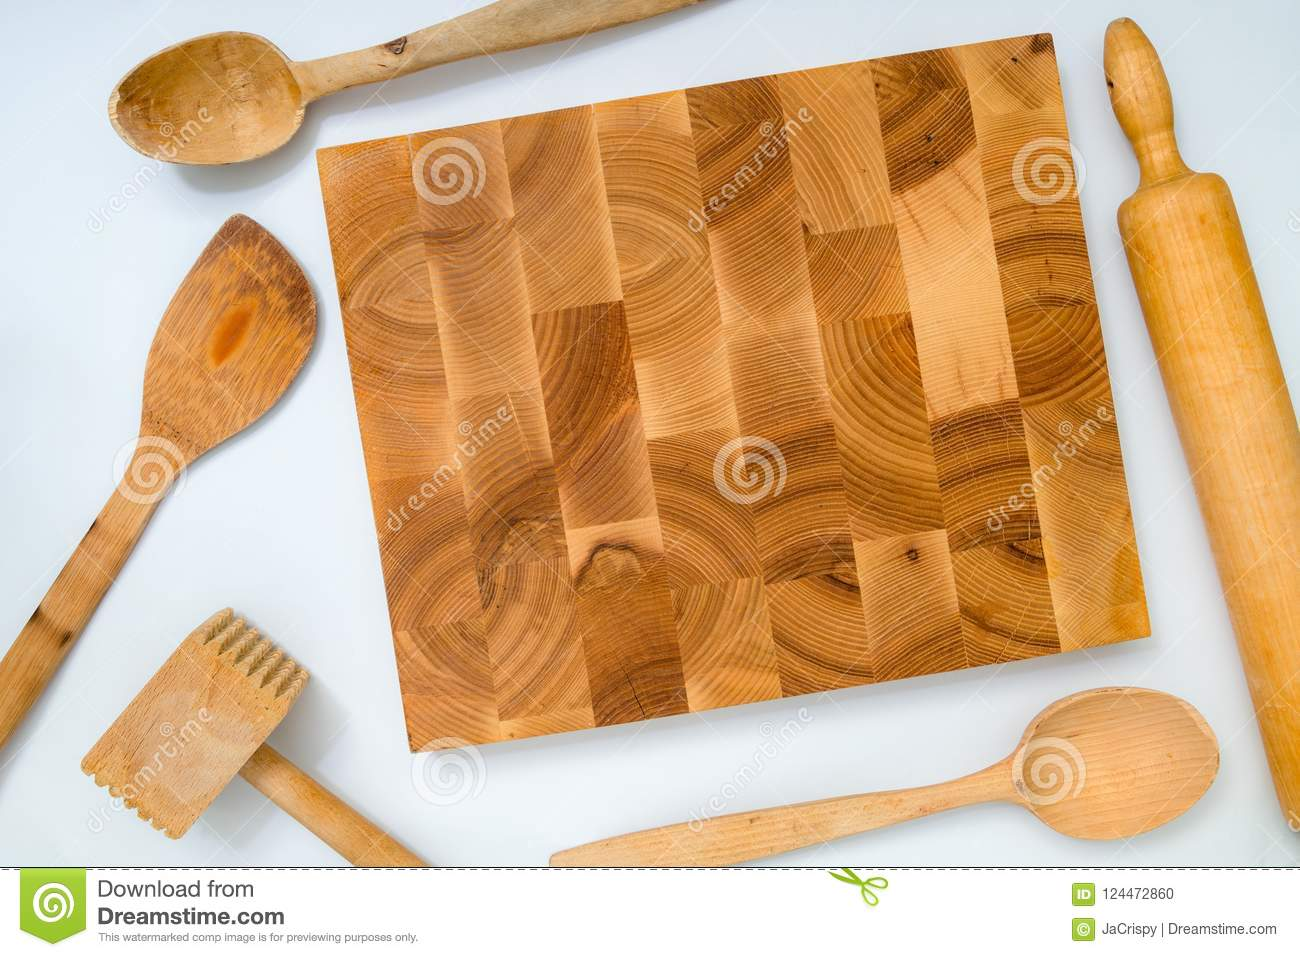 Pleasing Handmade Wooden Board And Kitchen Tools On White Background Download Free Architecture Designs Grimeyleaguecom